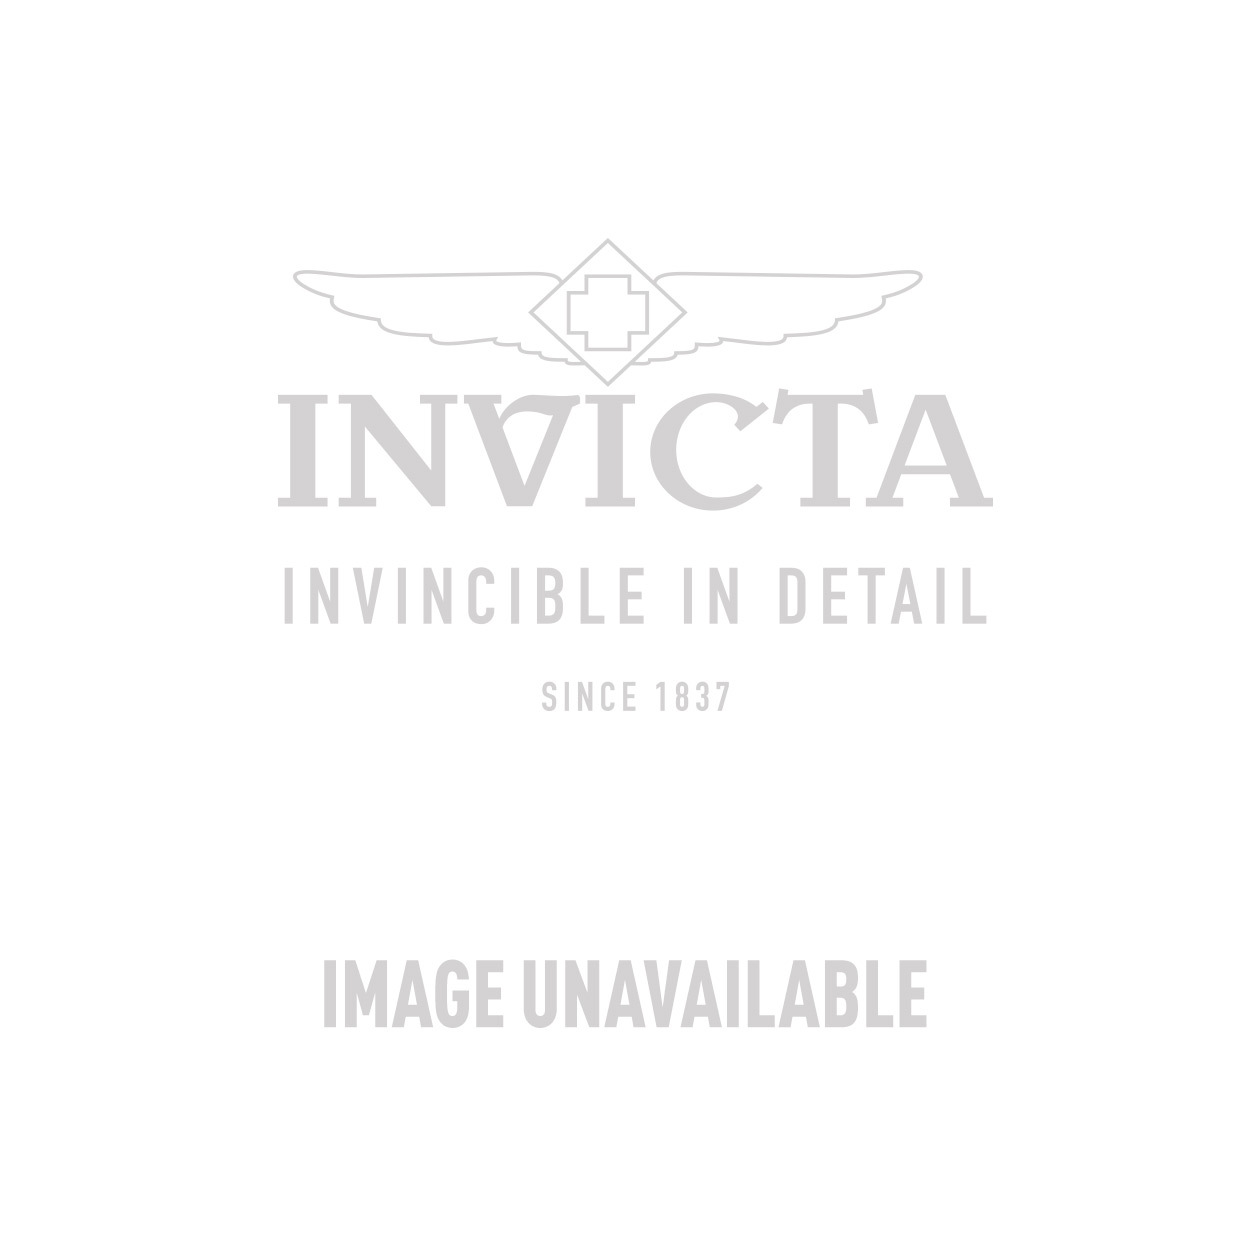 Invicta Speedway Swiss Made Quartz Watch - Black, Stainless Steel case with Black tone Leather band - Model 90198